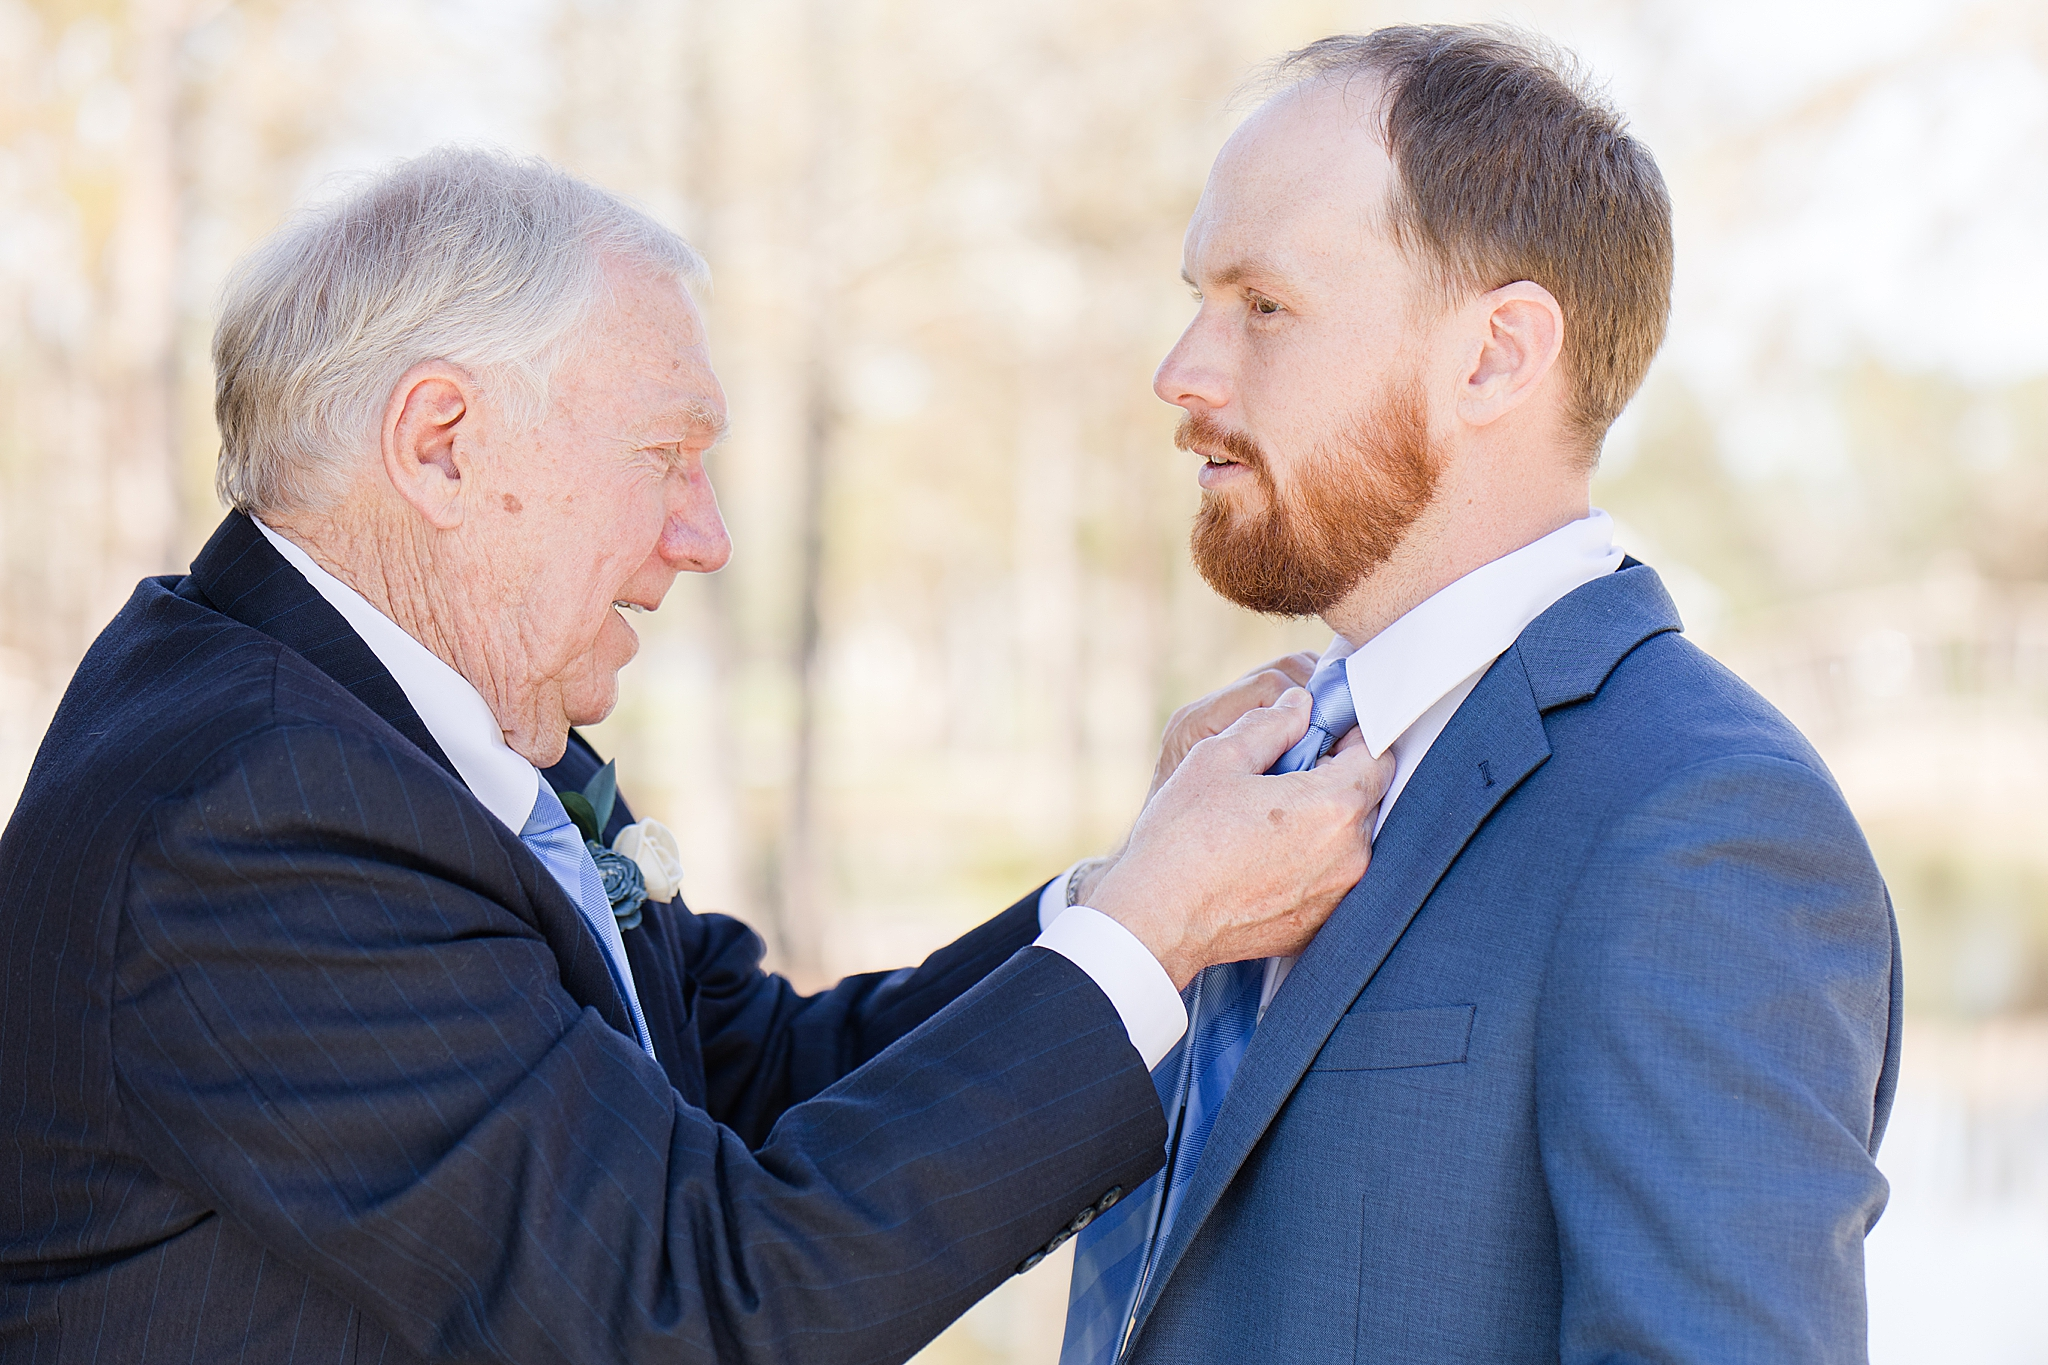 father of groom helps with tie